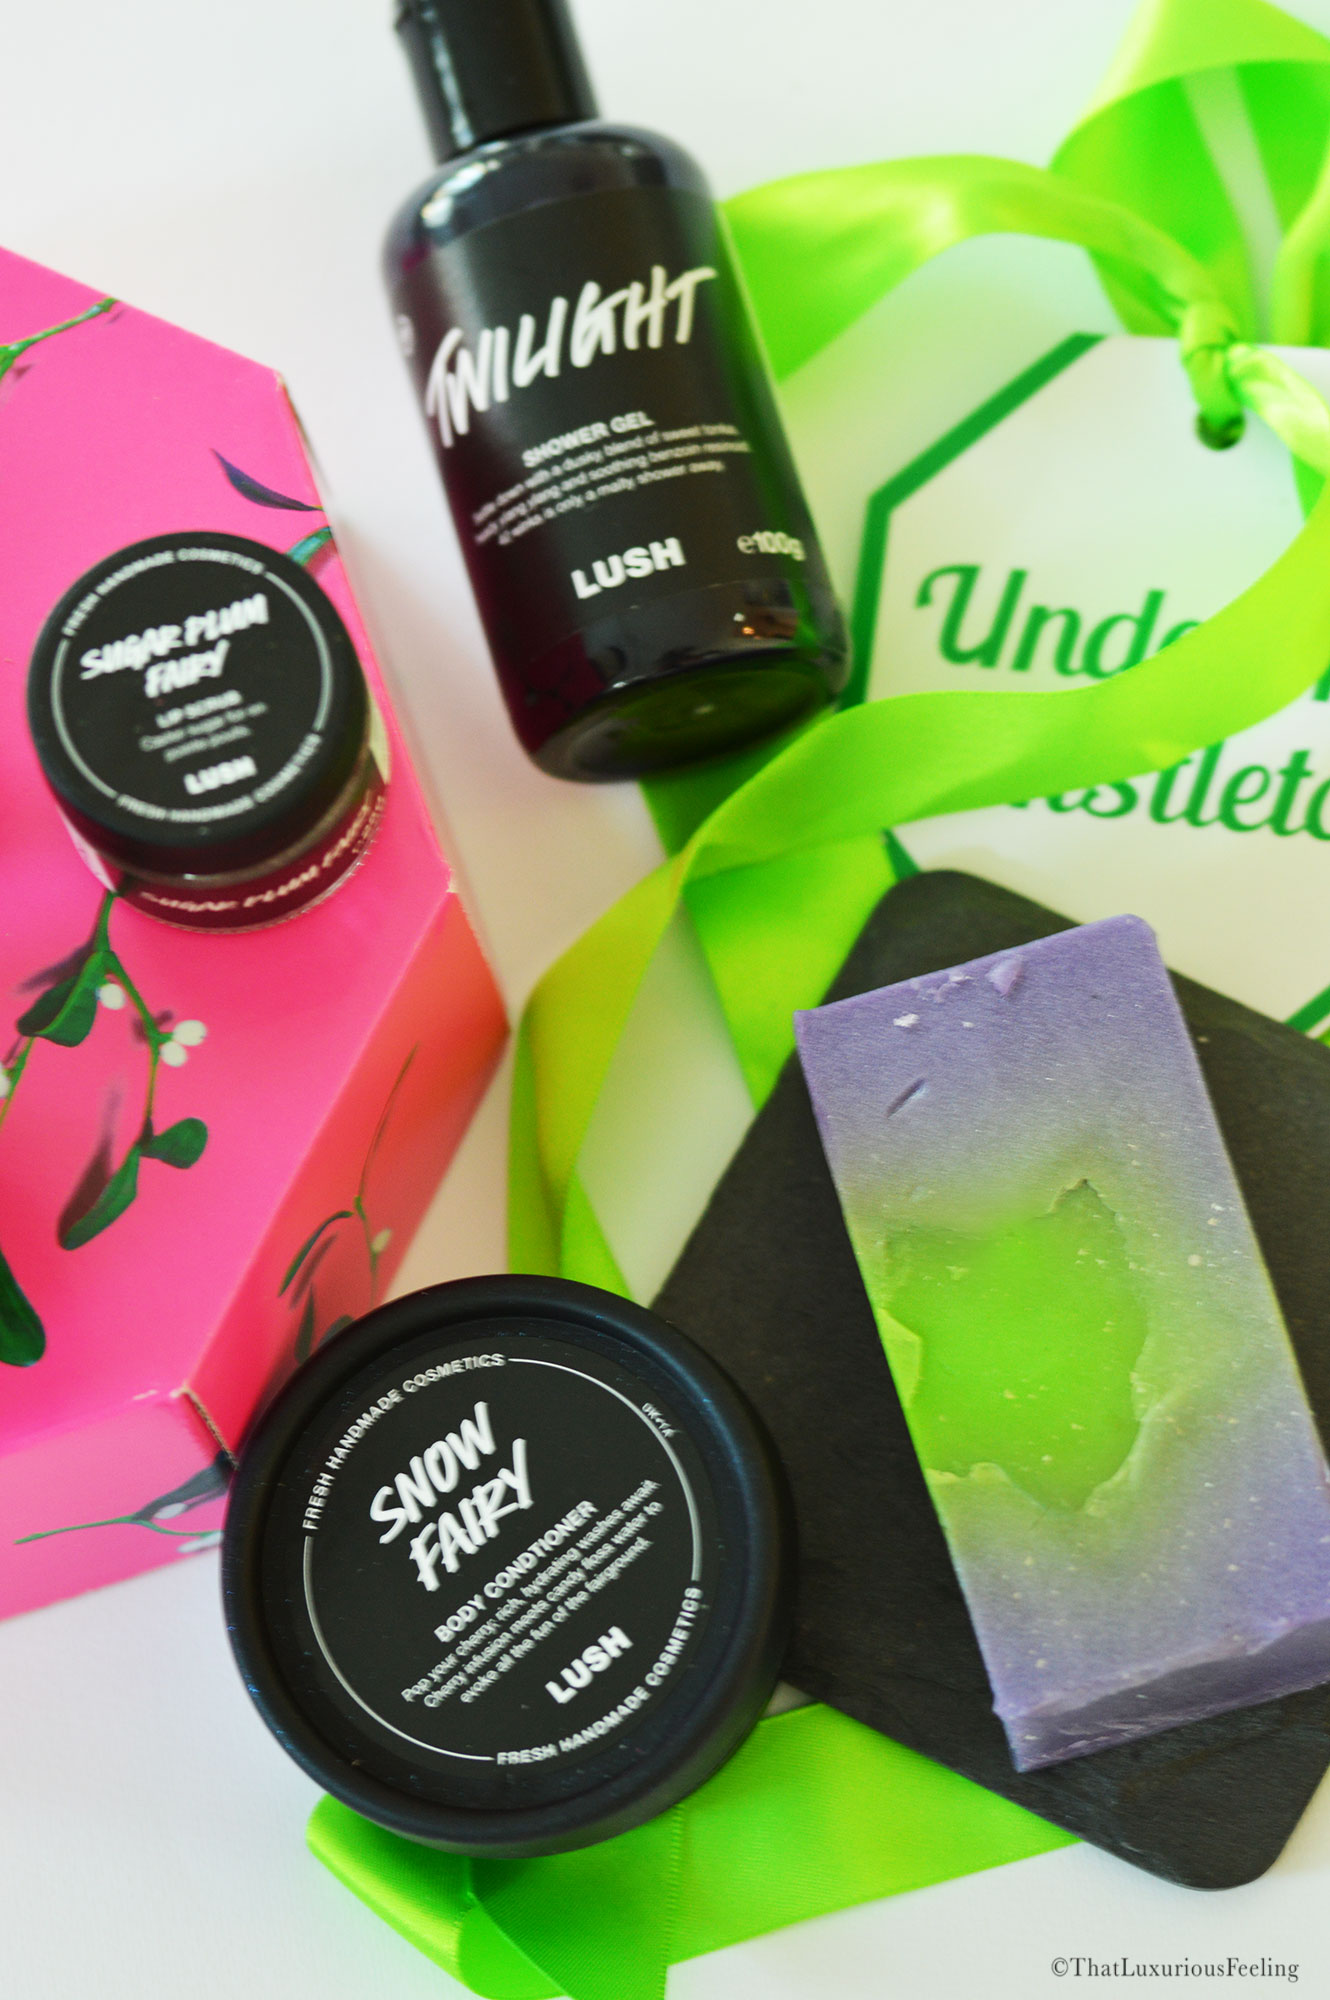 lush cosmetics essay Lush company background  topics: north lush is a cosmetics company that produces and sells a variety lush cosmetics is a brilliant company essay.